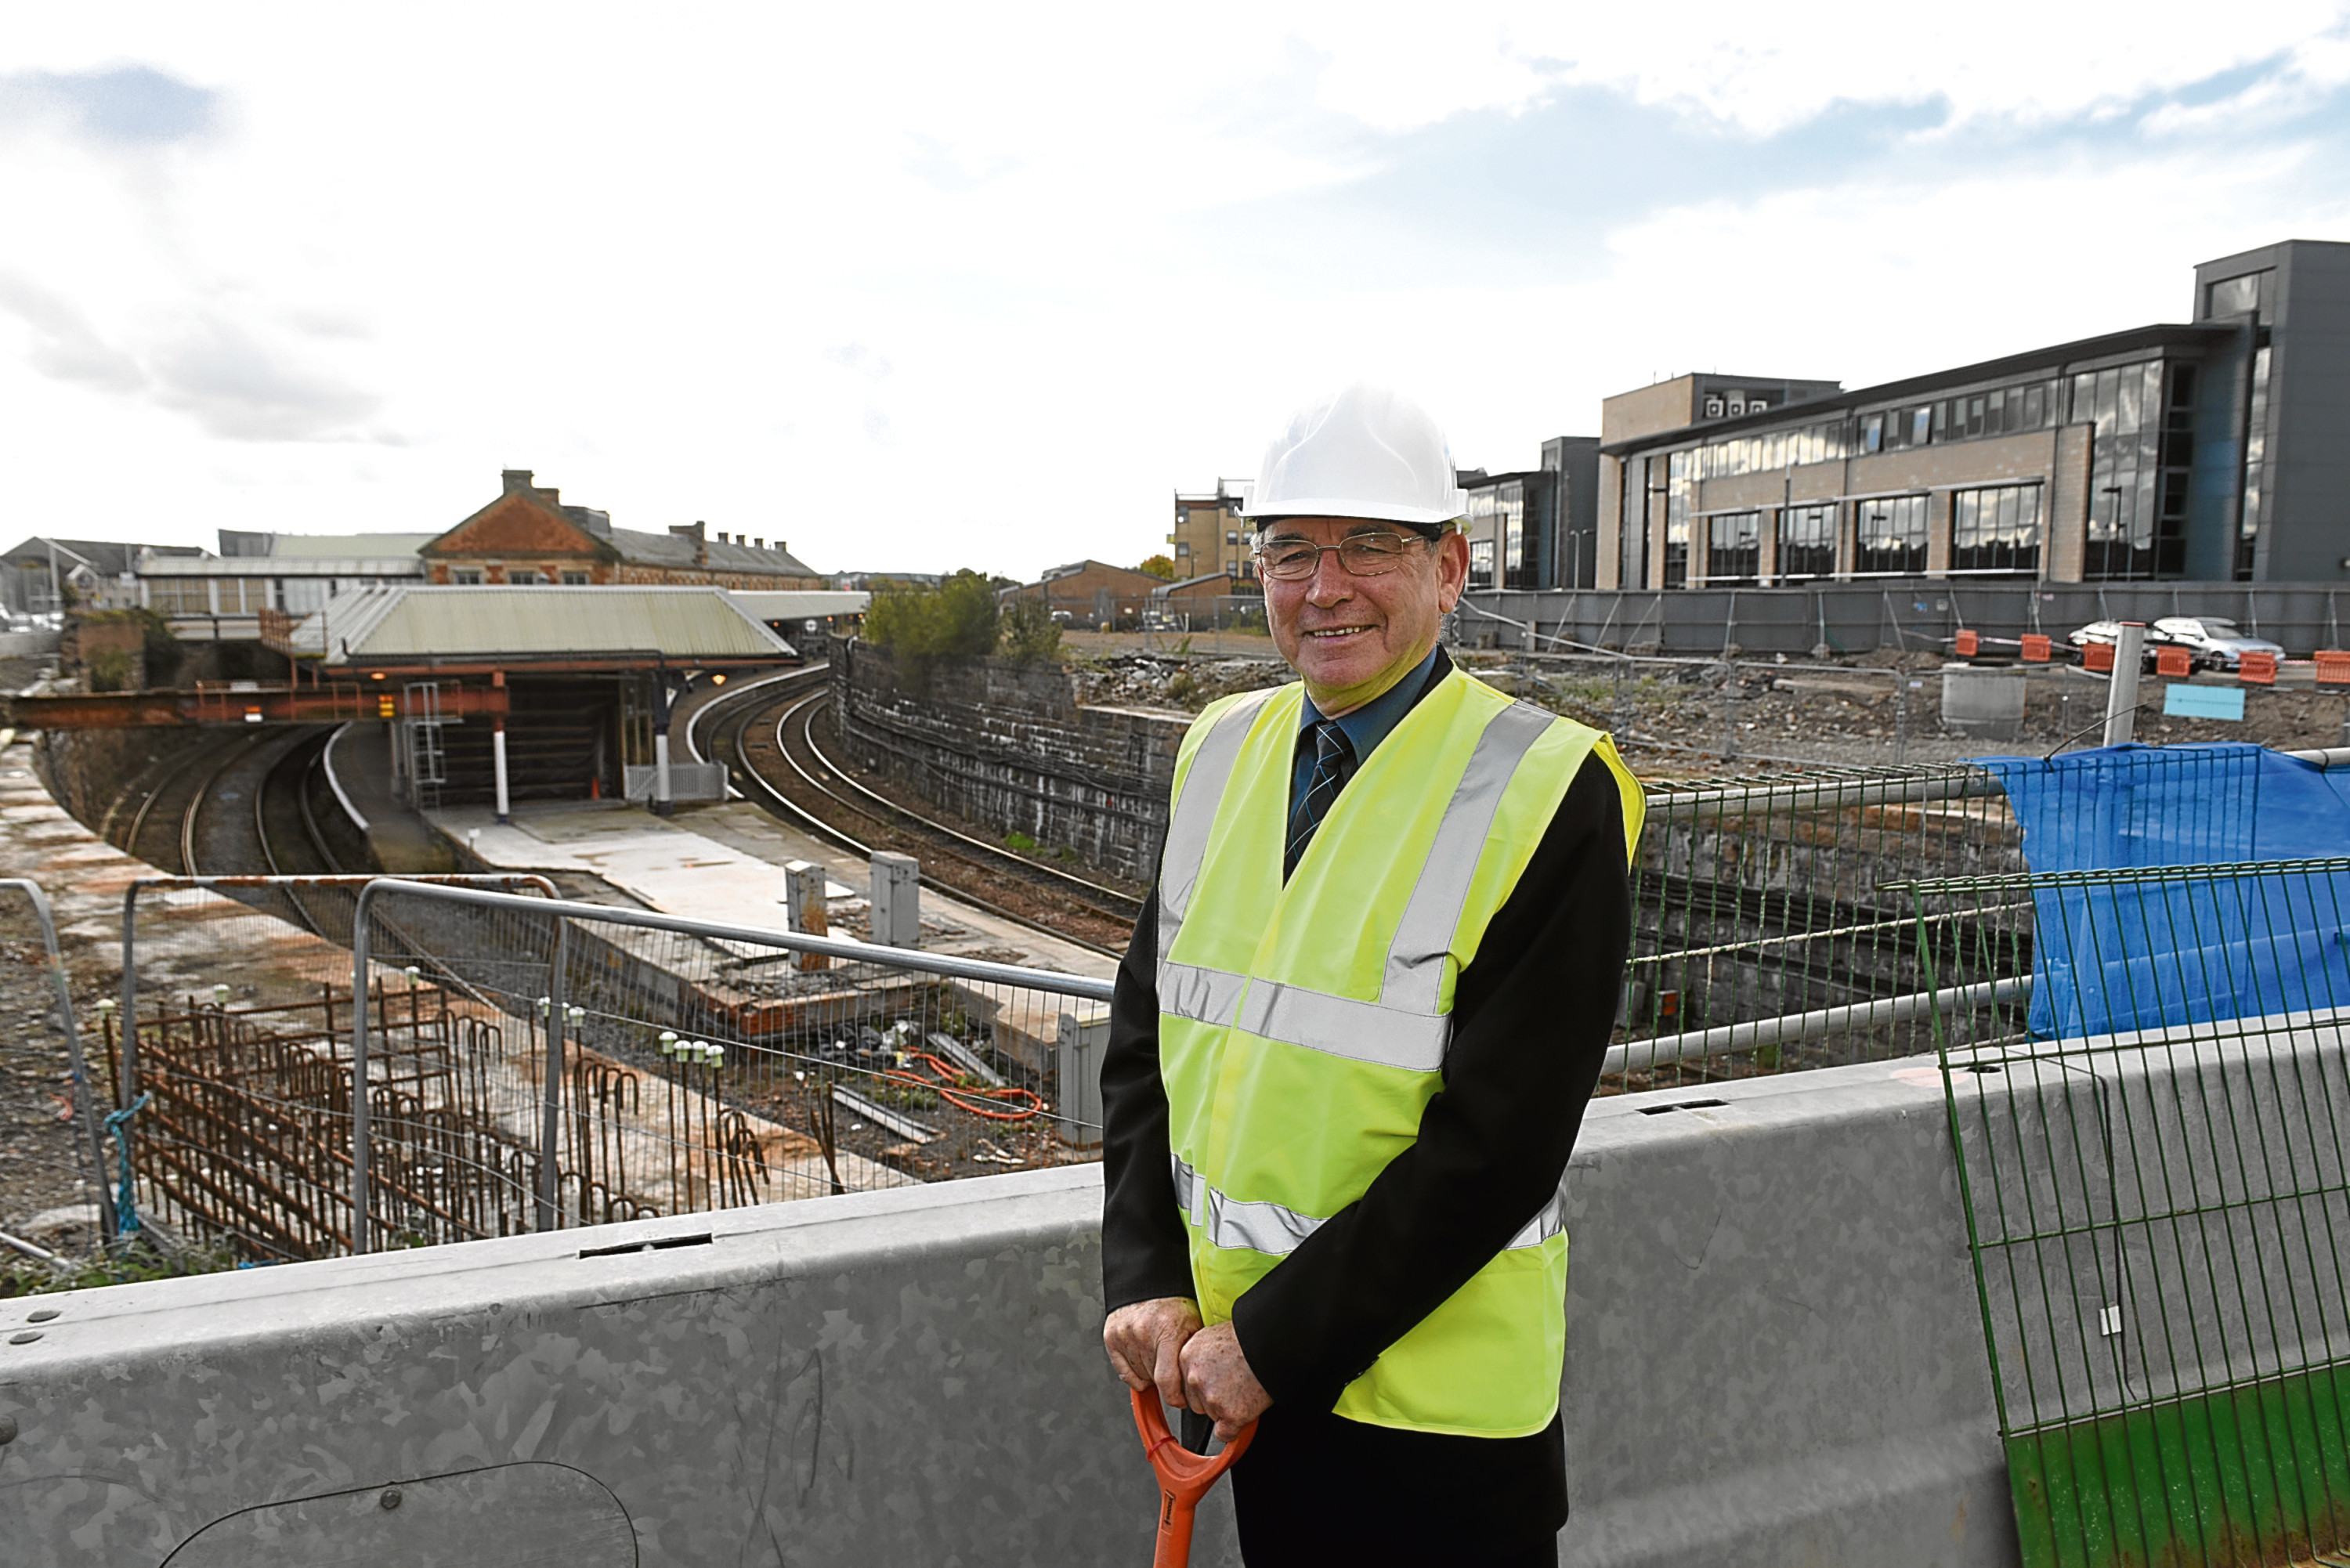 Council leader Ken Guild said work needs to be done to create jobs.